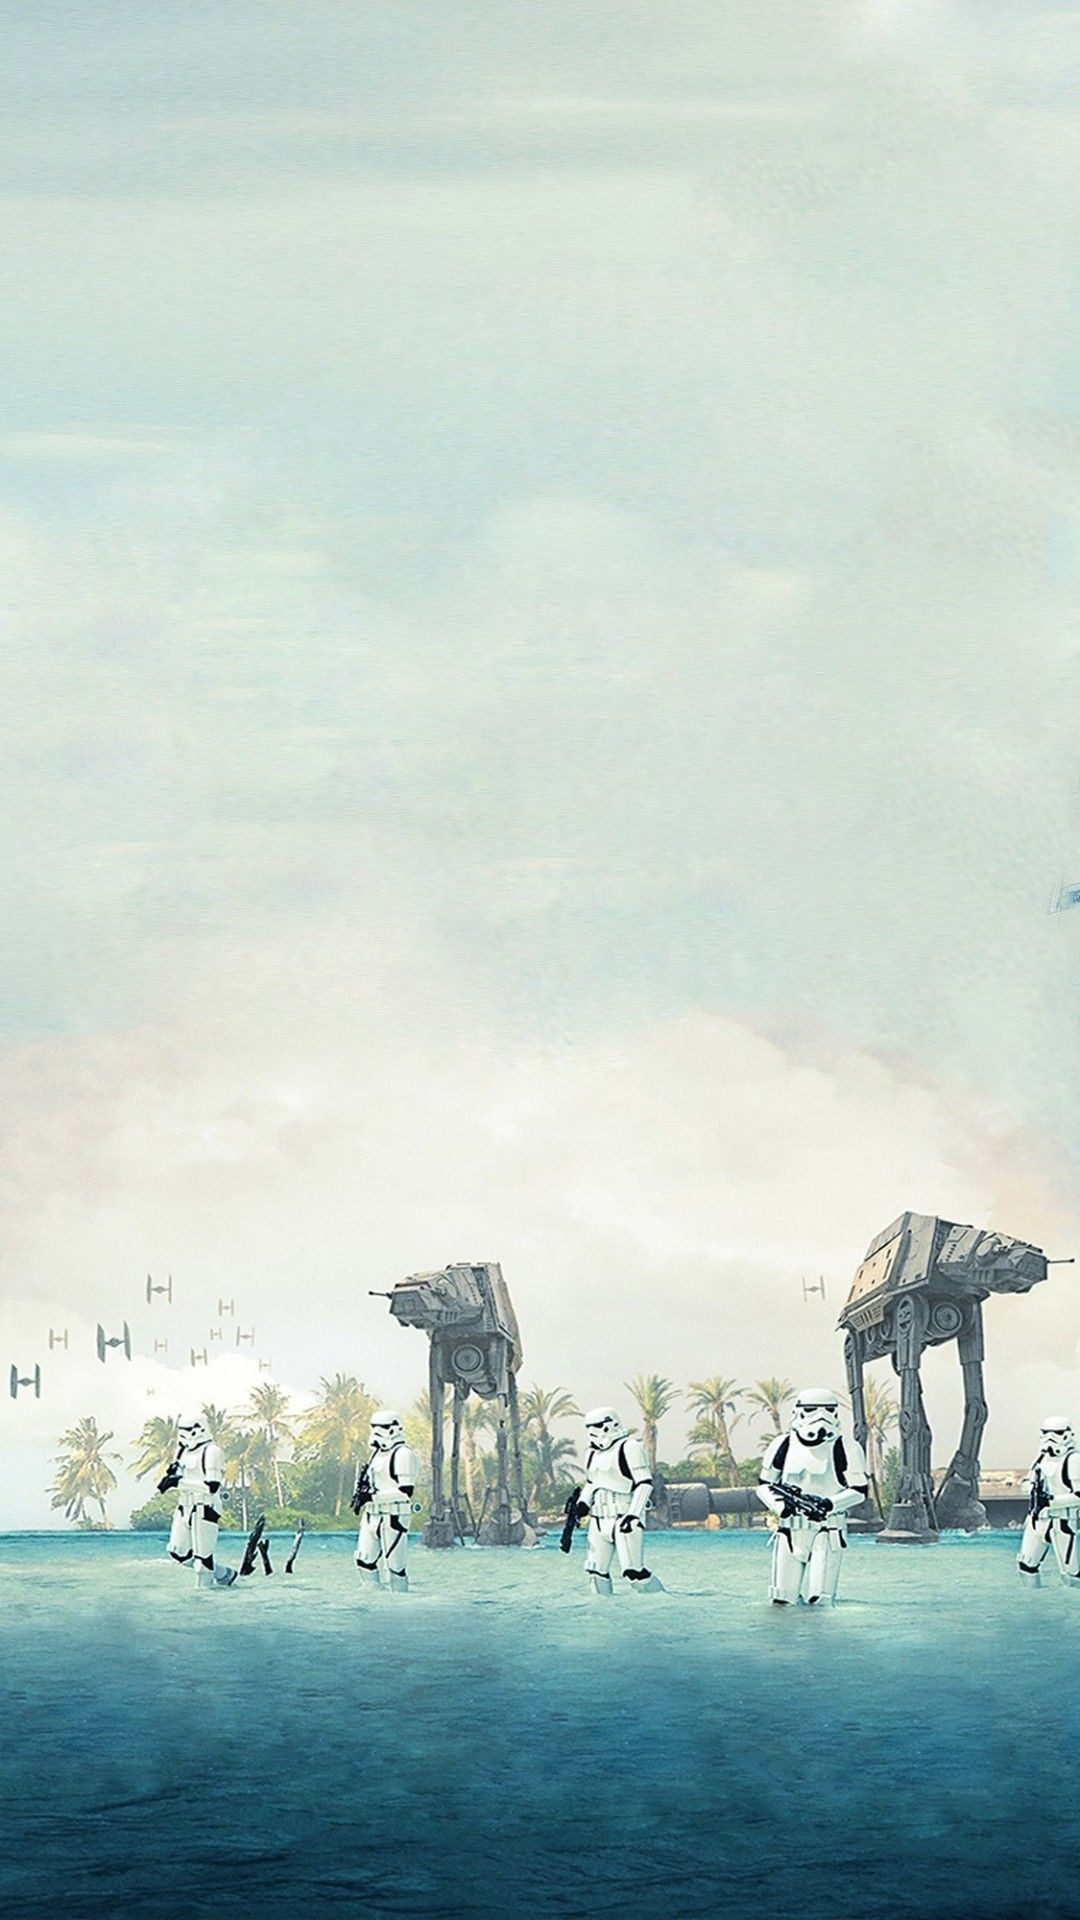 Star Wars Wallpaper Phone Posted By Samantha Mercado